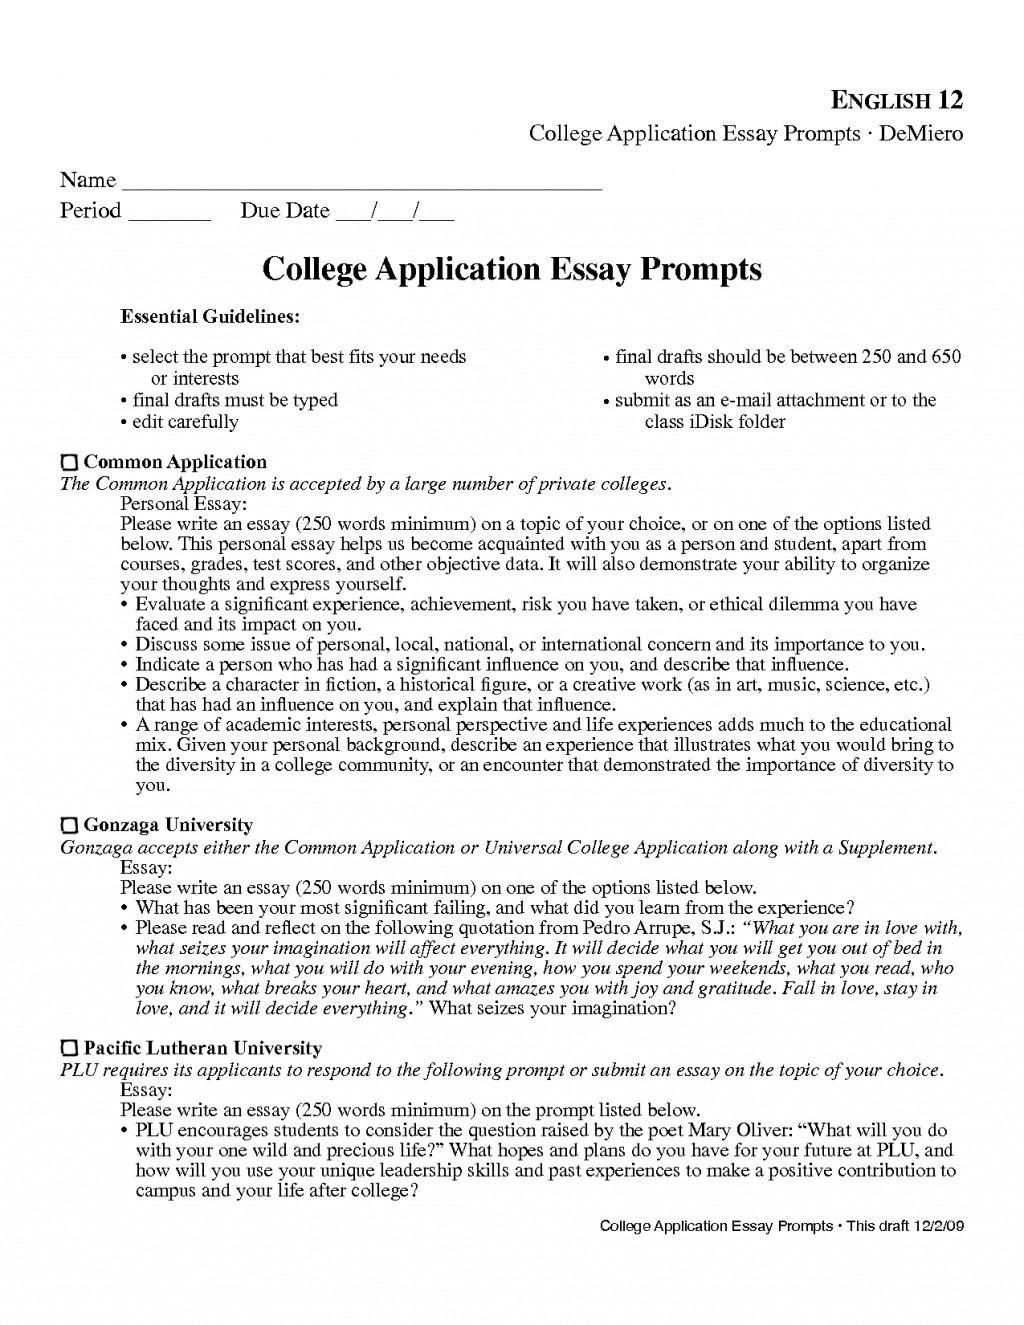 004 Essay Example College Applicationmat High School Admissions Good Topics To Write About Ideas Ecza Solinf Co Within Not Stirring For Essays Application Large